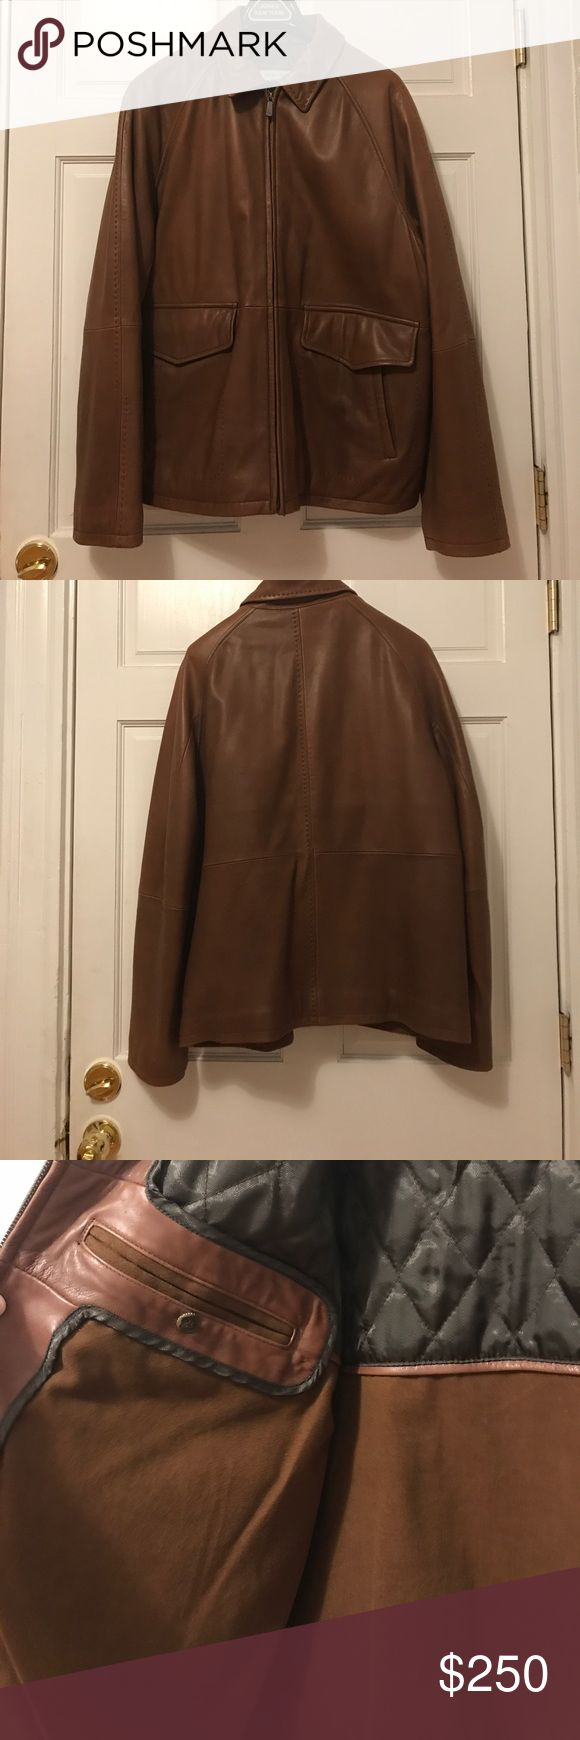 Men's brown leather jacket Men's brown leather jacket, extra soft, worn only twice excellent condition. joseph abboud Jackets & Coats Military & Field